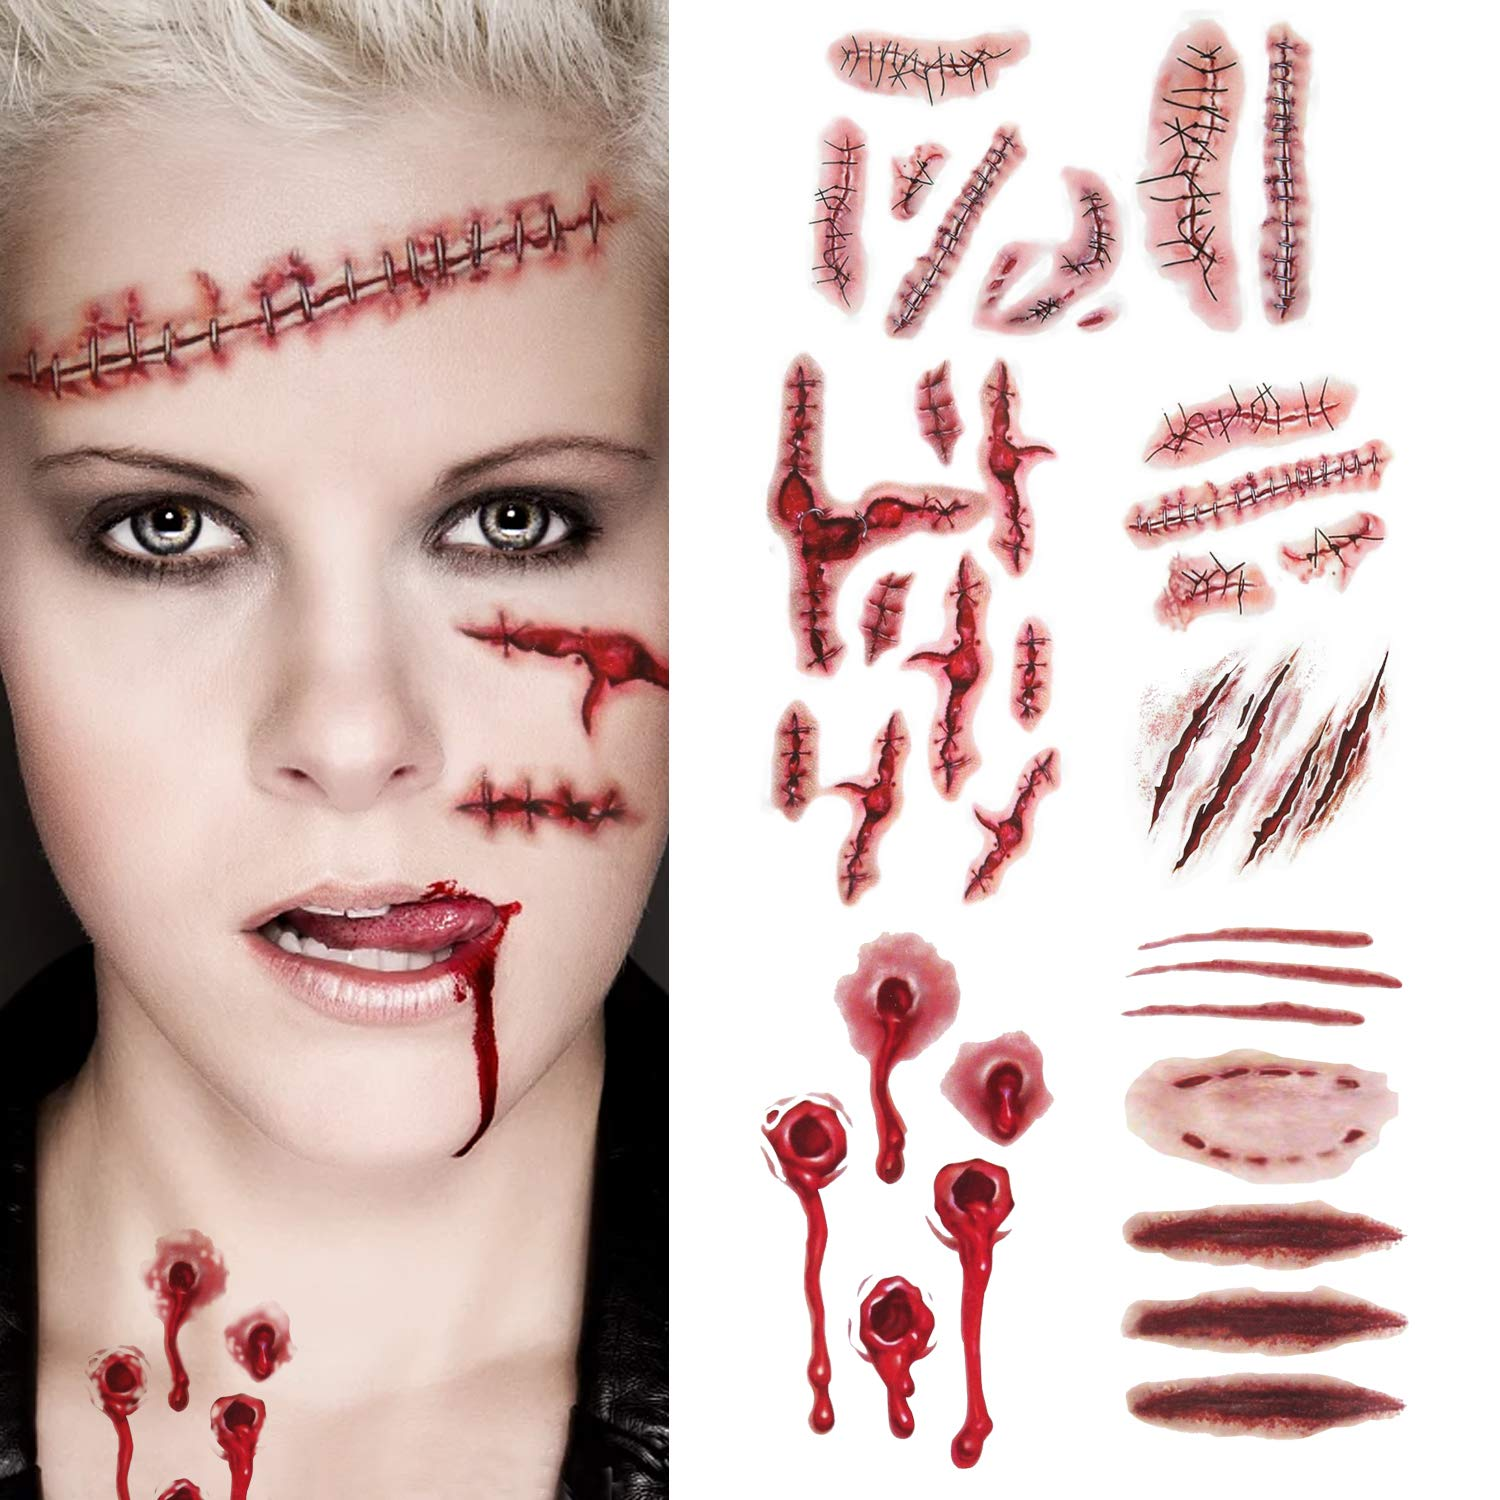 Halloween Scar Tattoos Bloody Stickers - Realistic Scratch Scar Temporary Tattoos Fake Scar Wound Stitch Tattoos Waterproof Costume Makeup Sticker Paper for Halloween Themed Party Prop and Cosplay INCOK